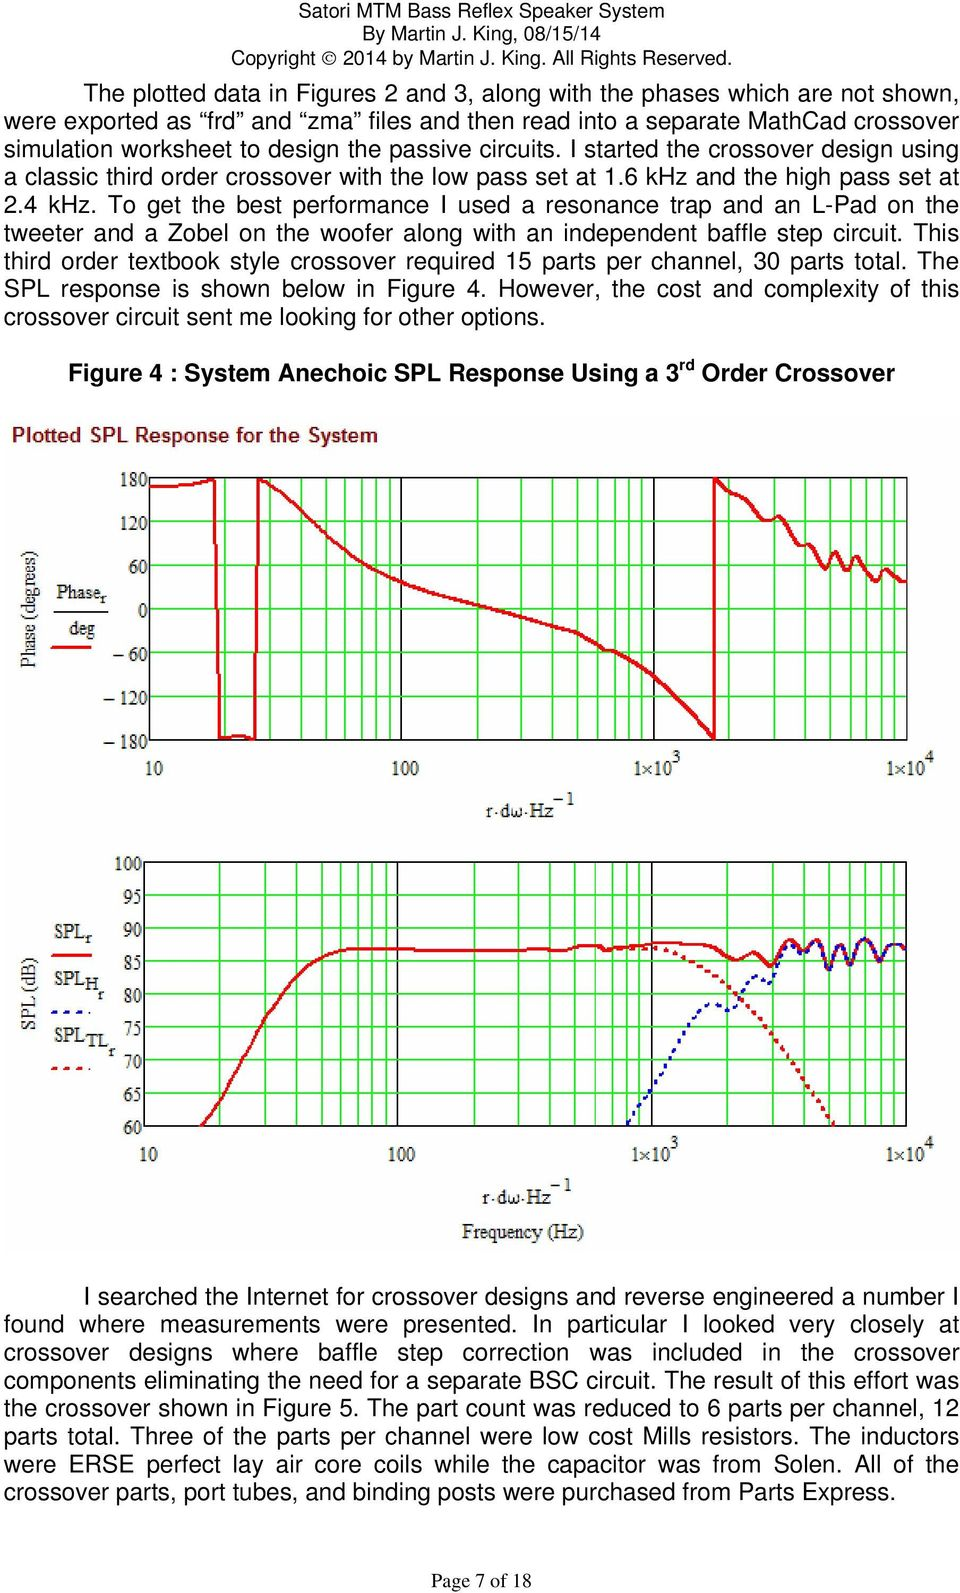 Satori Mtm Bass Reflex Speaker System Pdf Design Of Crossover Using Online Calculator Schematic Diagram To Get The Best Performance I Used A Resonance Trap And An L Pad On 9 Figure 5 Final